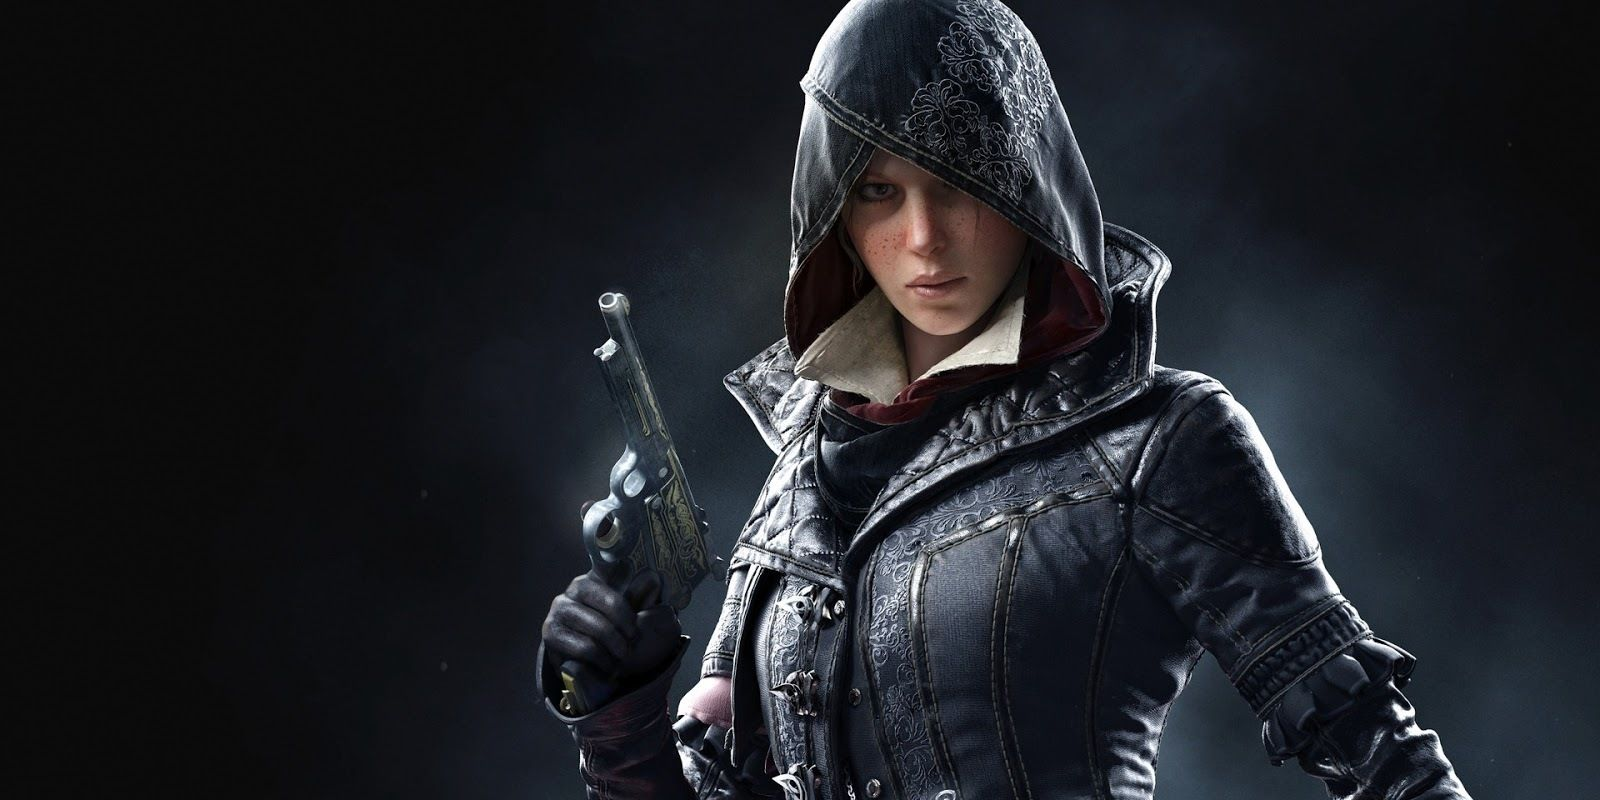 Assassin's Creed Odyssey Somehow Includes Syndicate's Evie